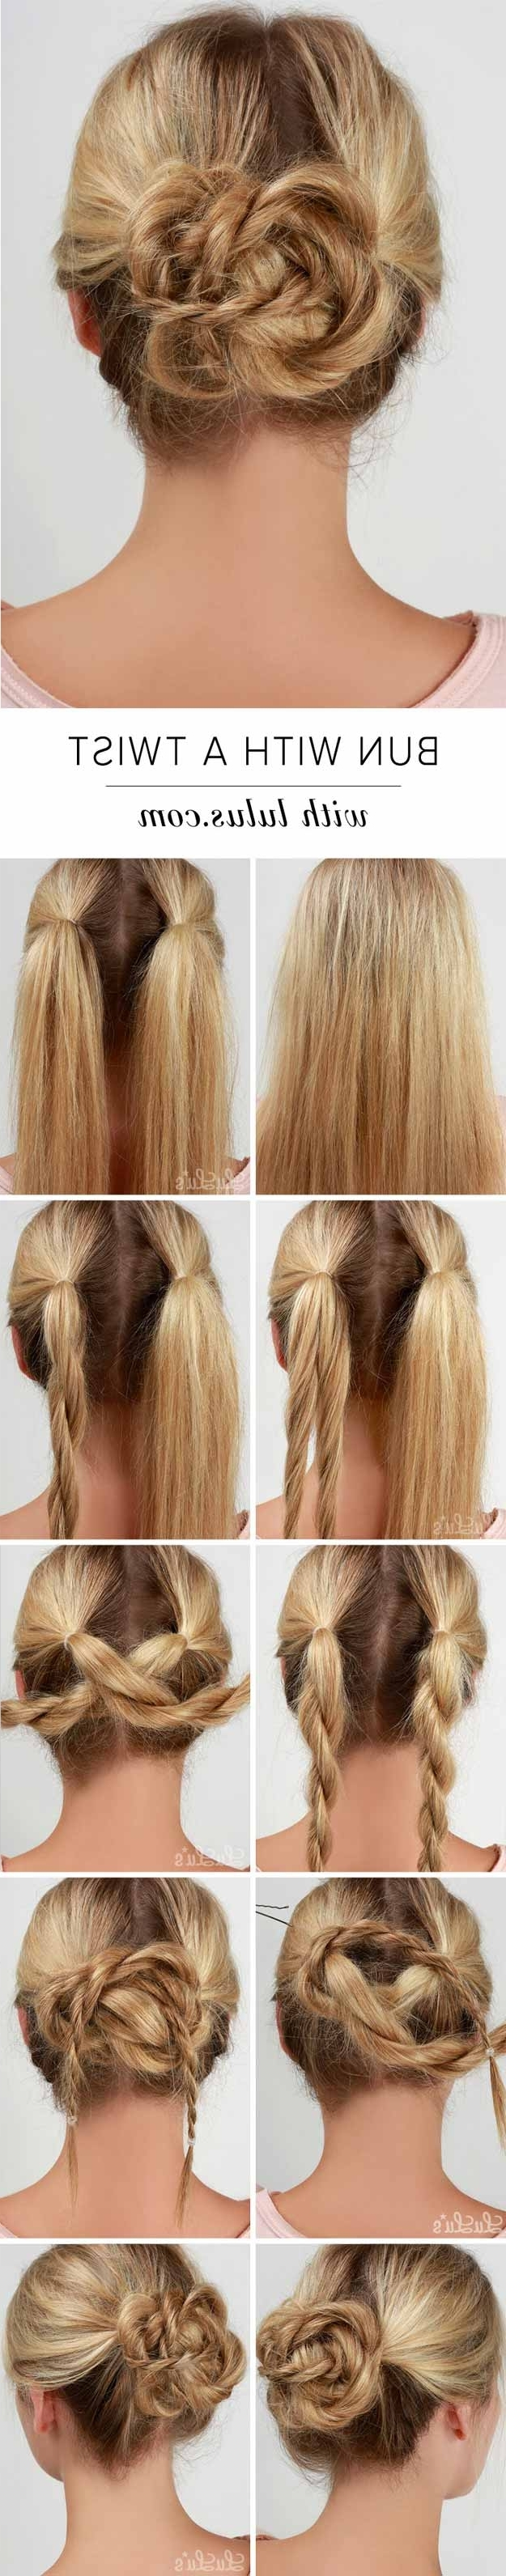 Most Up To Date Wedding Guest Hairstyles For Long Straight Hair With 31 Wedding Hairstyles For Long Hair – The Goddess (View 7 of 15)